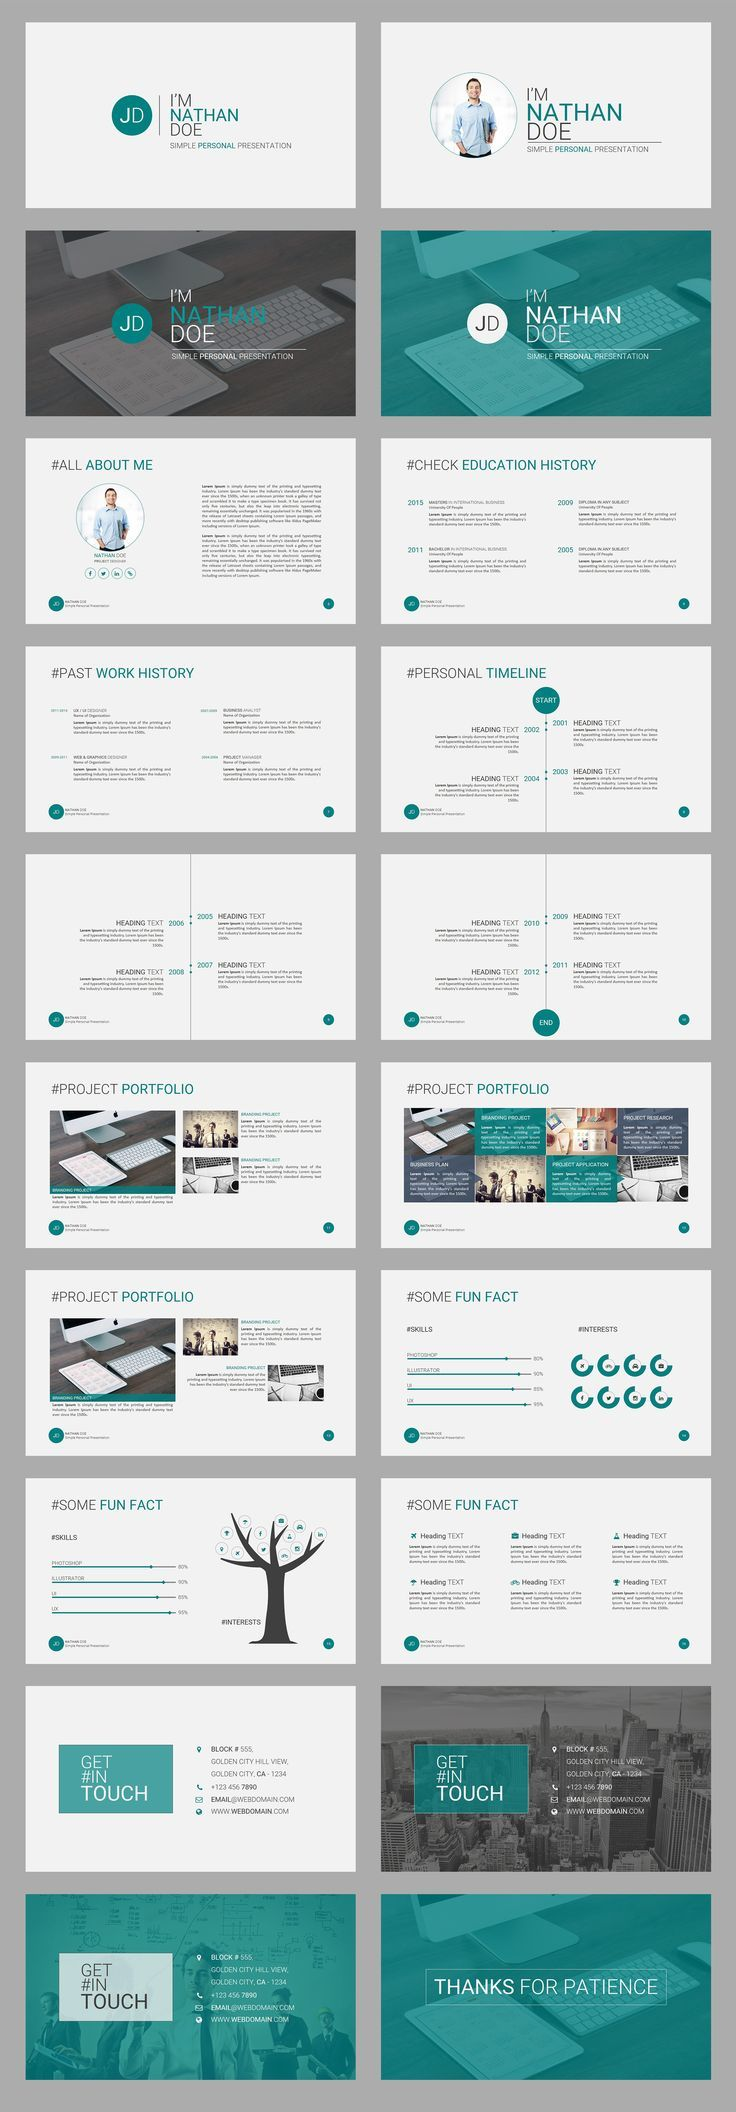 """JD - Personal (CV/Resume) Powerpoint Presentation Template"" is a #Simple but #Amazing #Personal #Portfolio #PowerPoint #presentation #Template for any corporate or business person. Its a great way to brand yourself in front of the client or any other b…. If you're a user experience professional, listen to The UX Blog Podcast on iTunes."